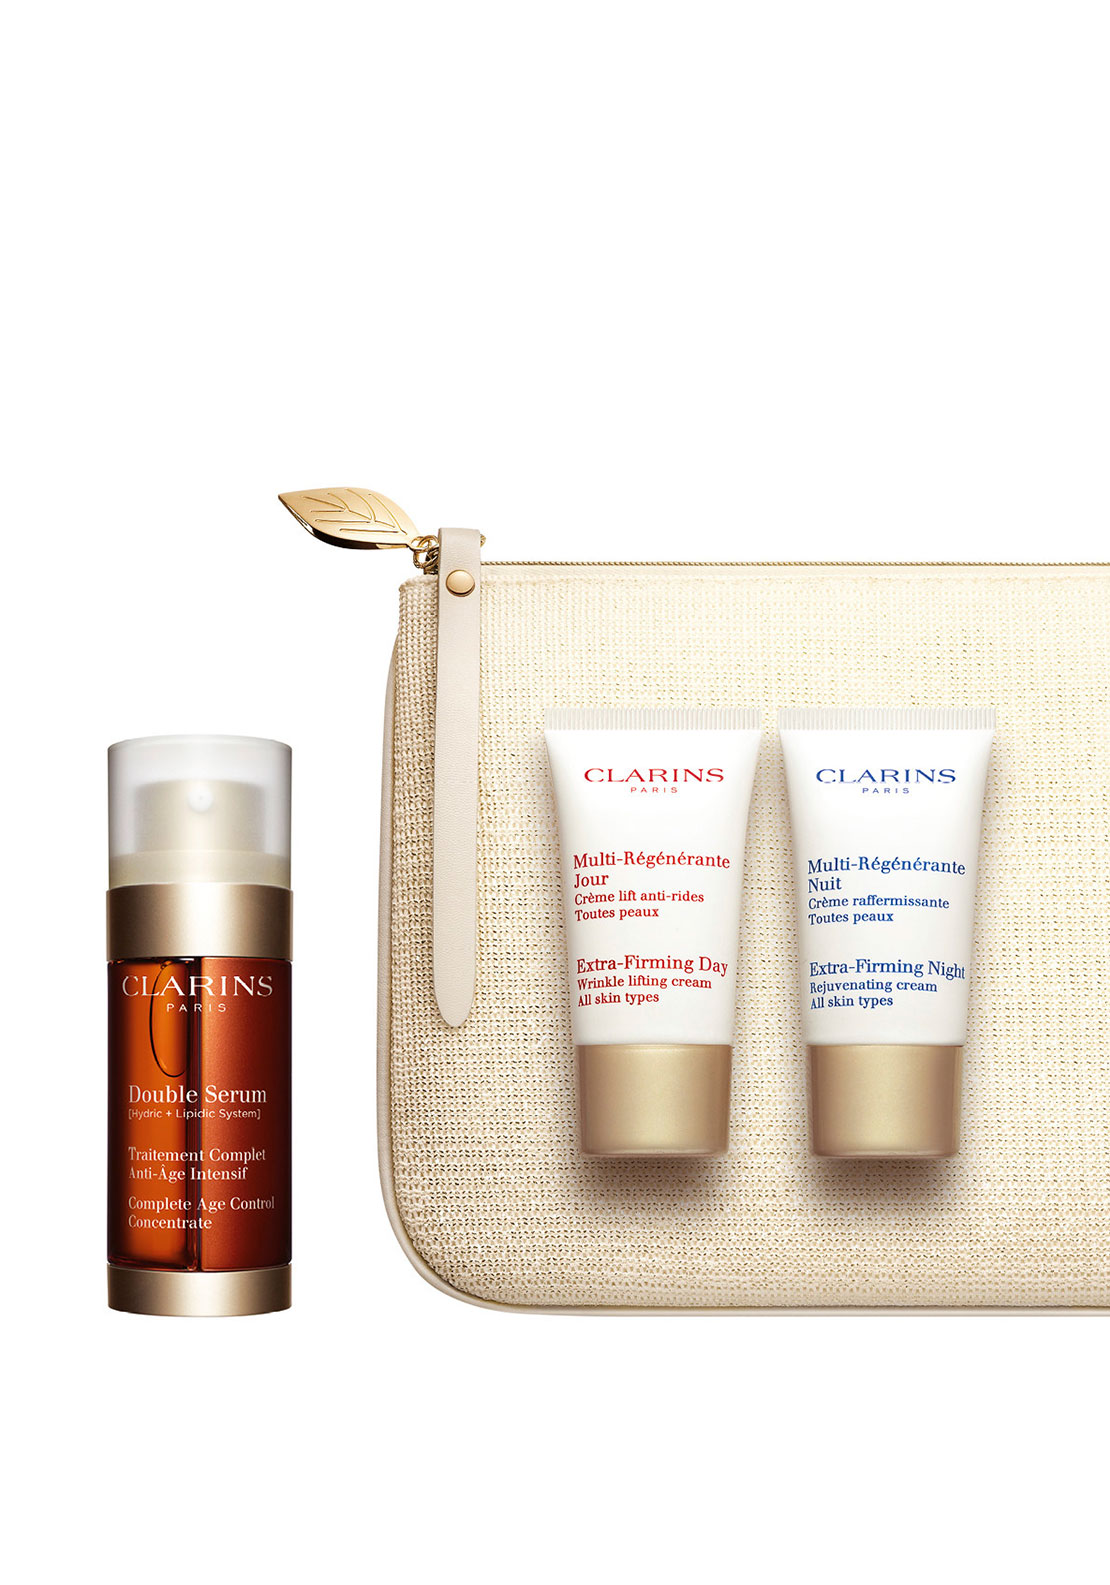 Clarins 'My Youth Booster Programme' Gift Set